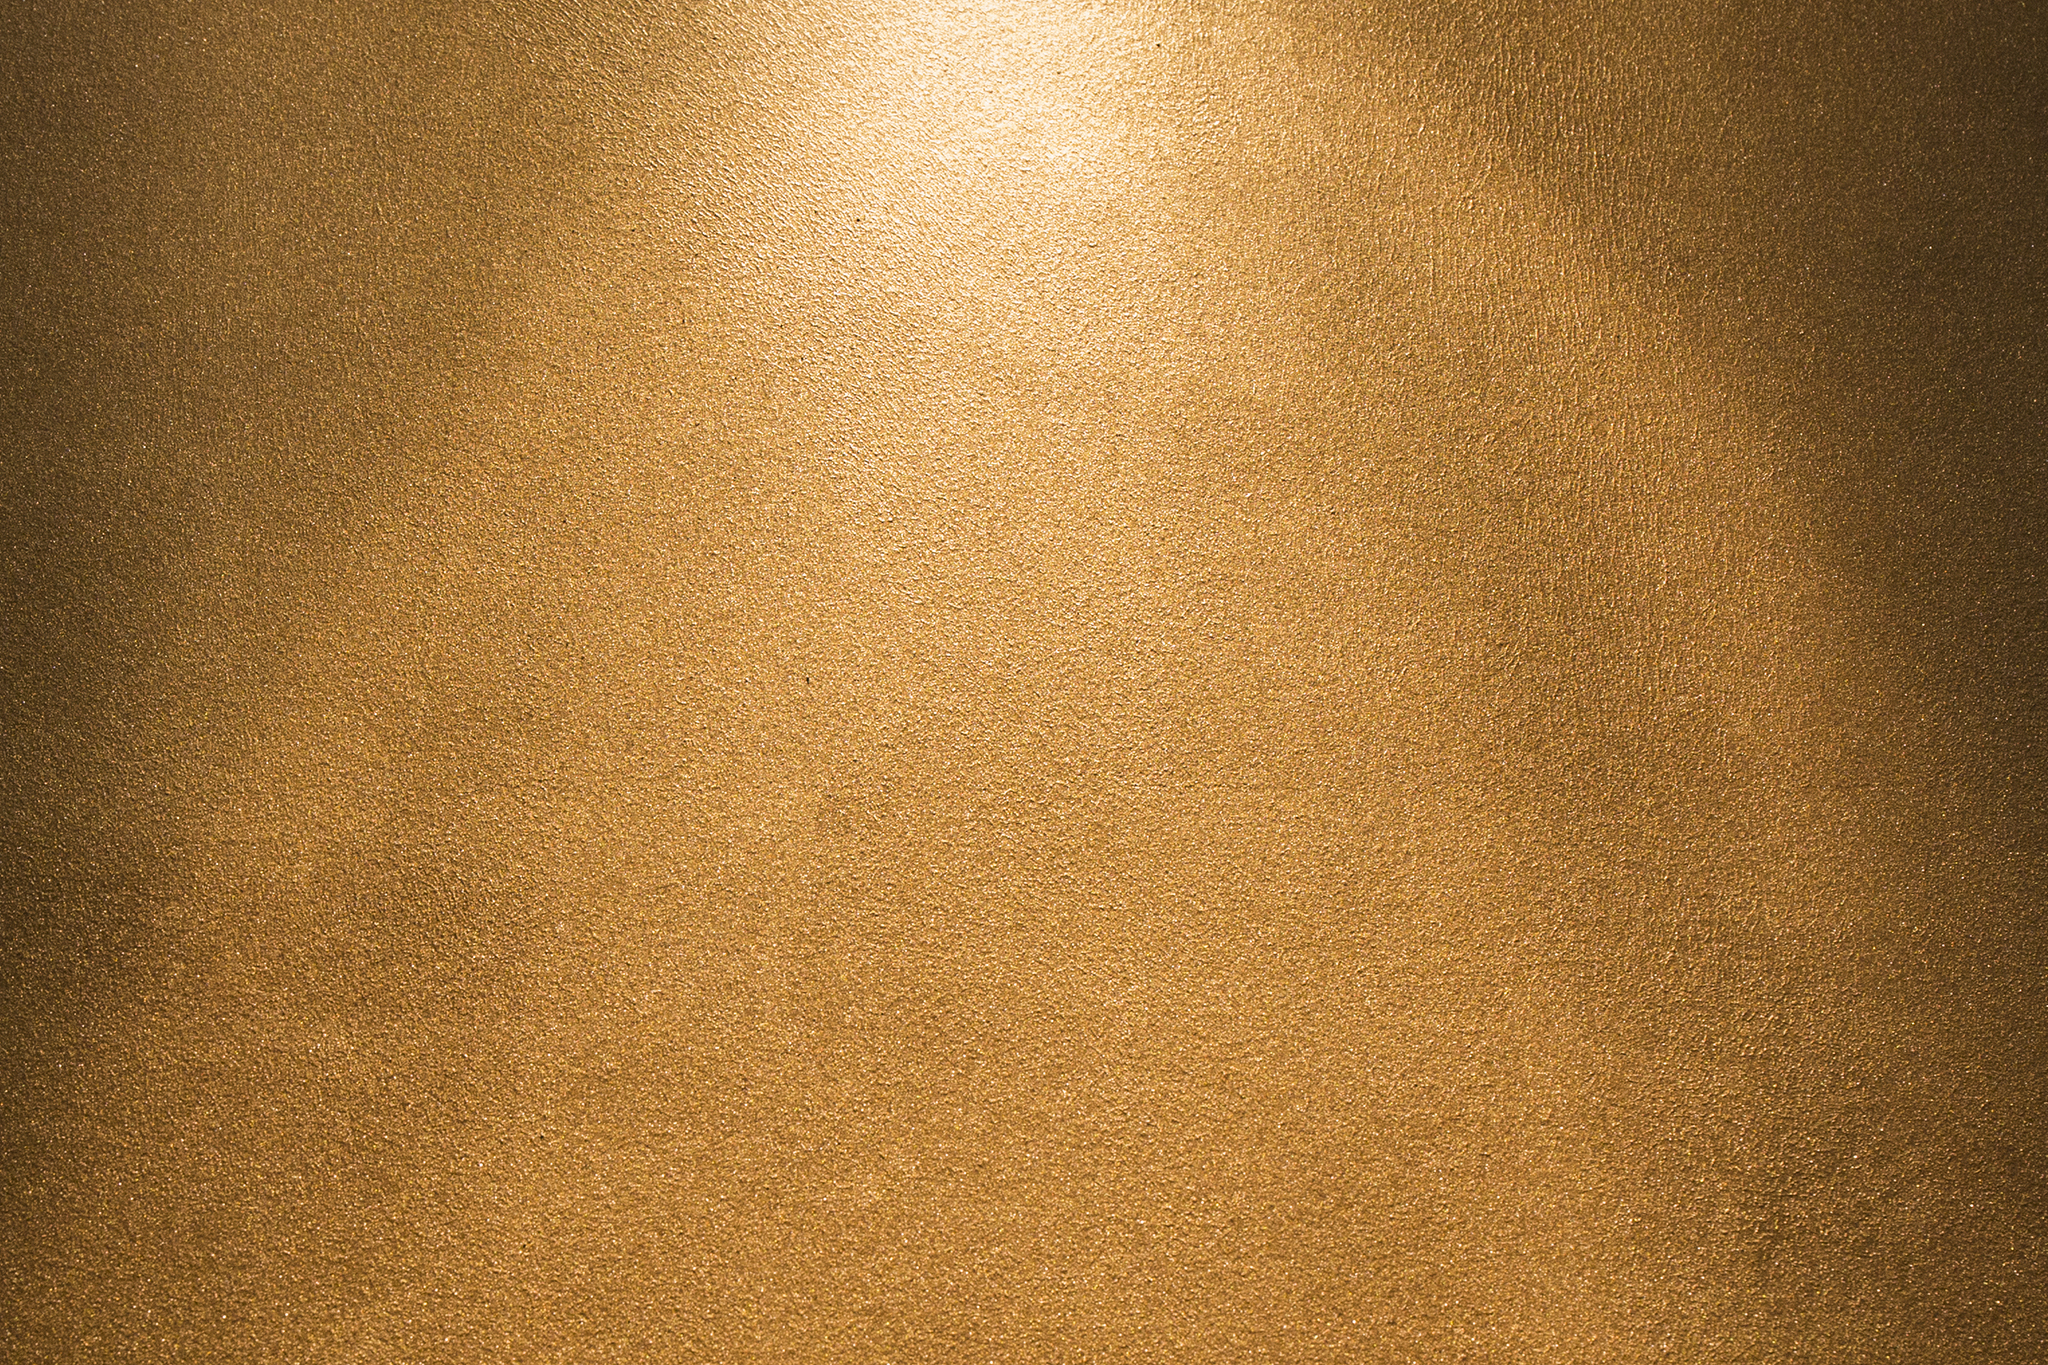 cement texture gold color, Great background made with a texture of a gold wall